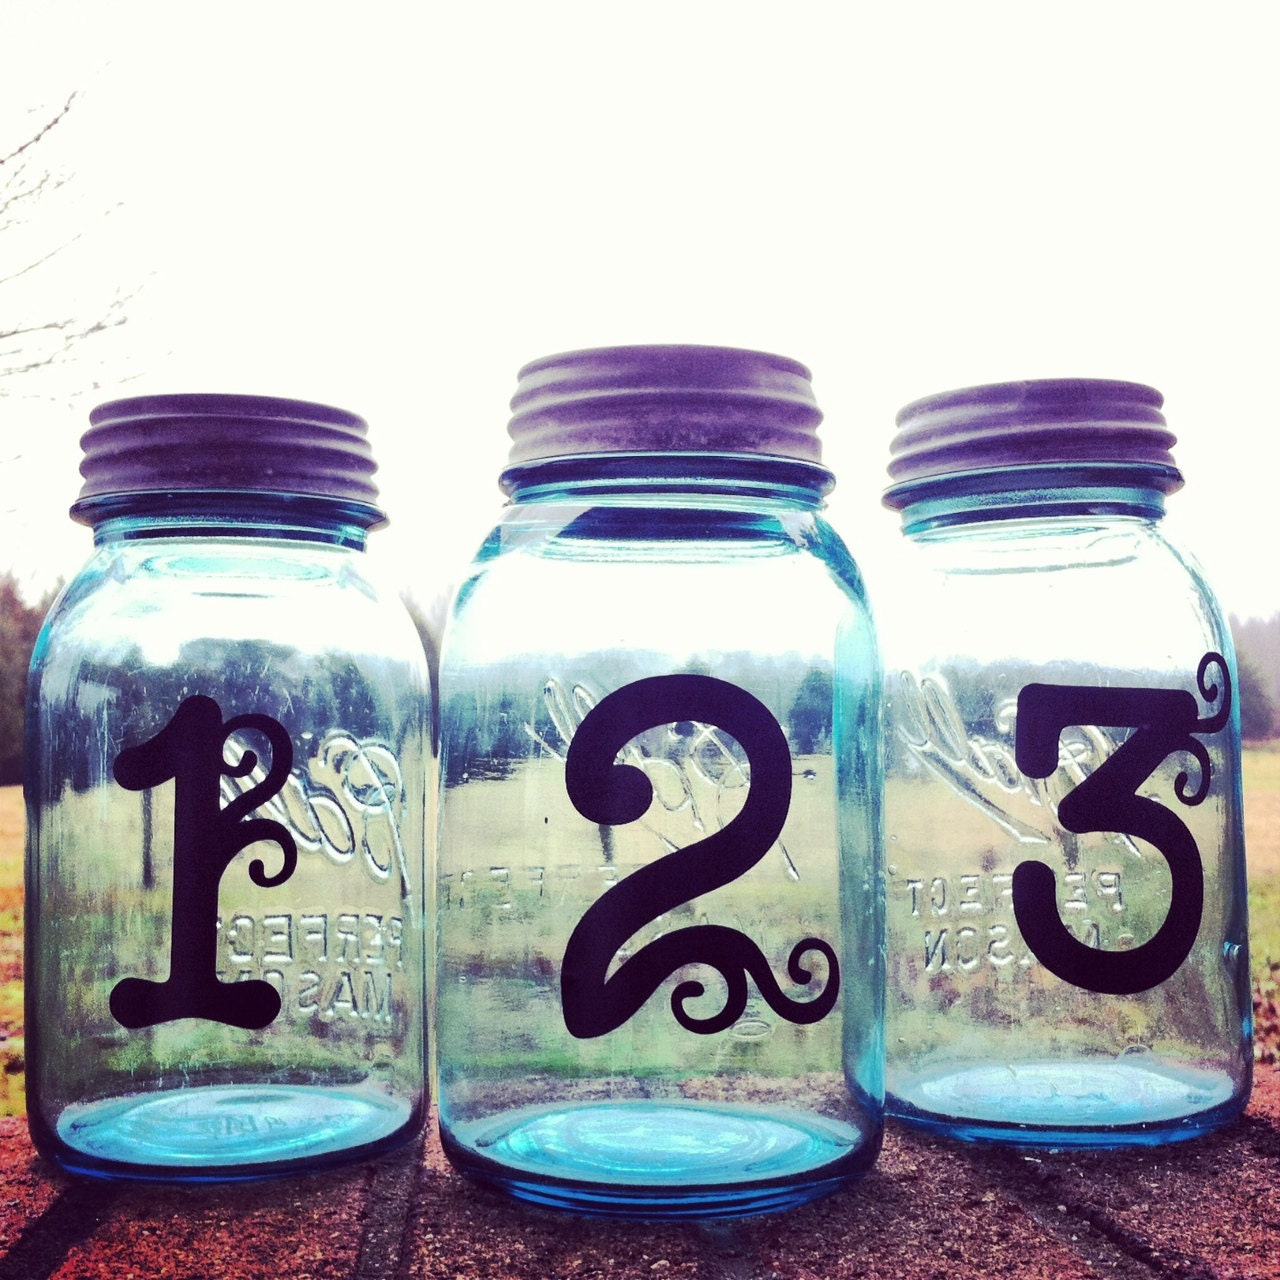 Mason Jar Wedding Centerpiece Table Numbers Vinyl Wedding Table Numbers Wedding Centerpiece Table Numbers Mason Jar Wedding Table Numbers